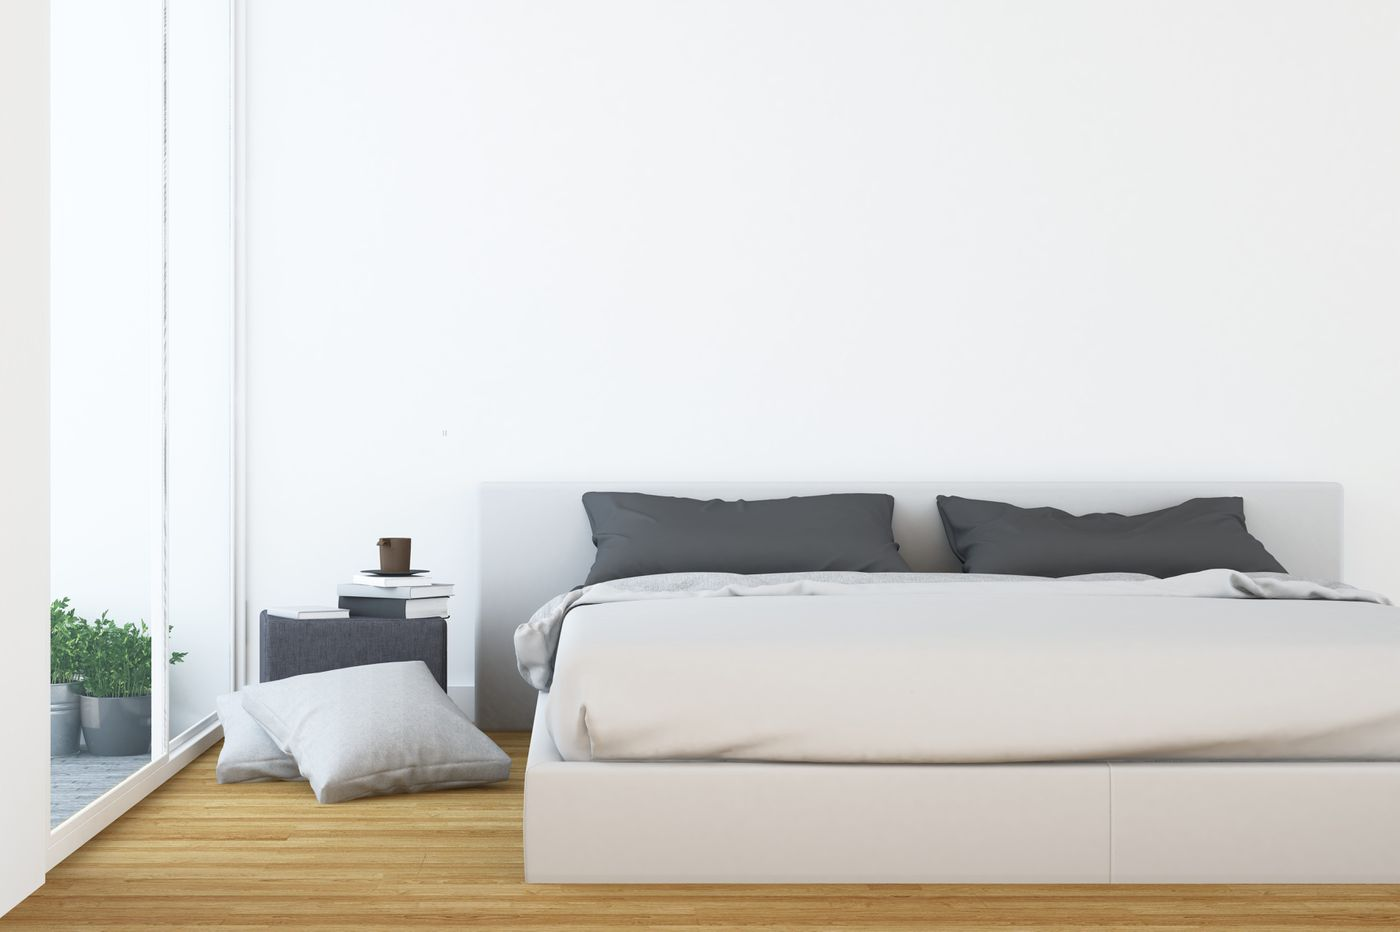 Ask Jennifer Adams: Are nightstands essential bedroom furniture for a spare, minimal look?